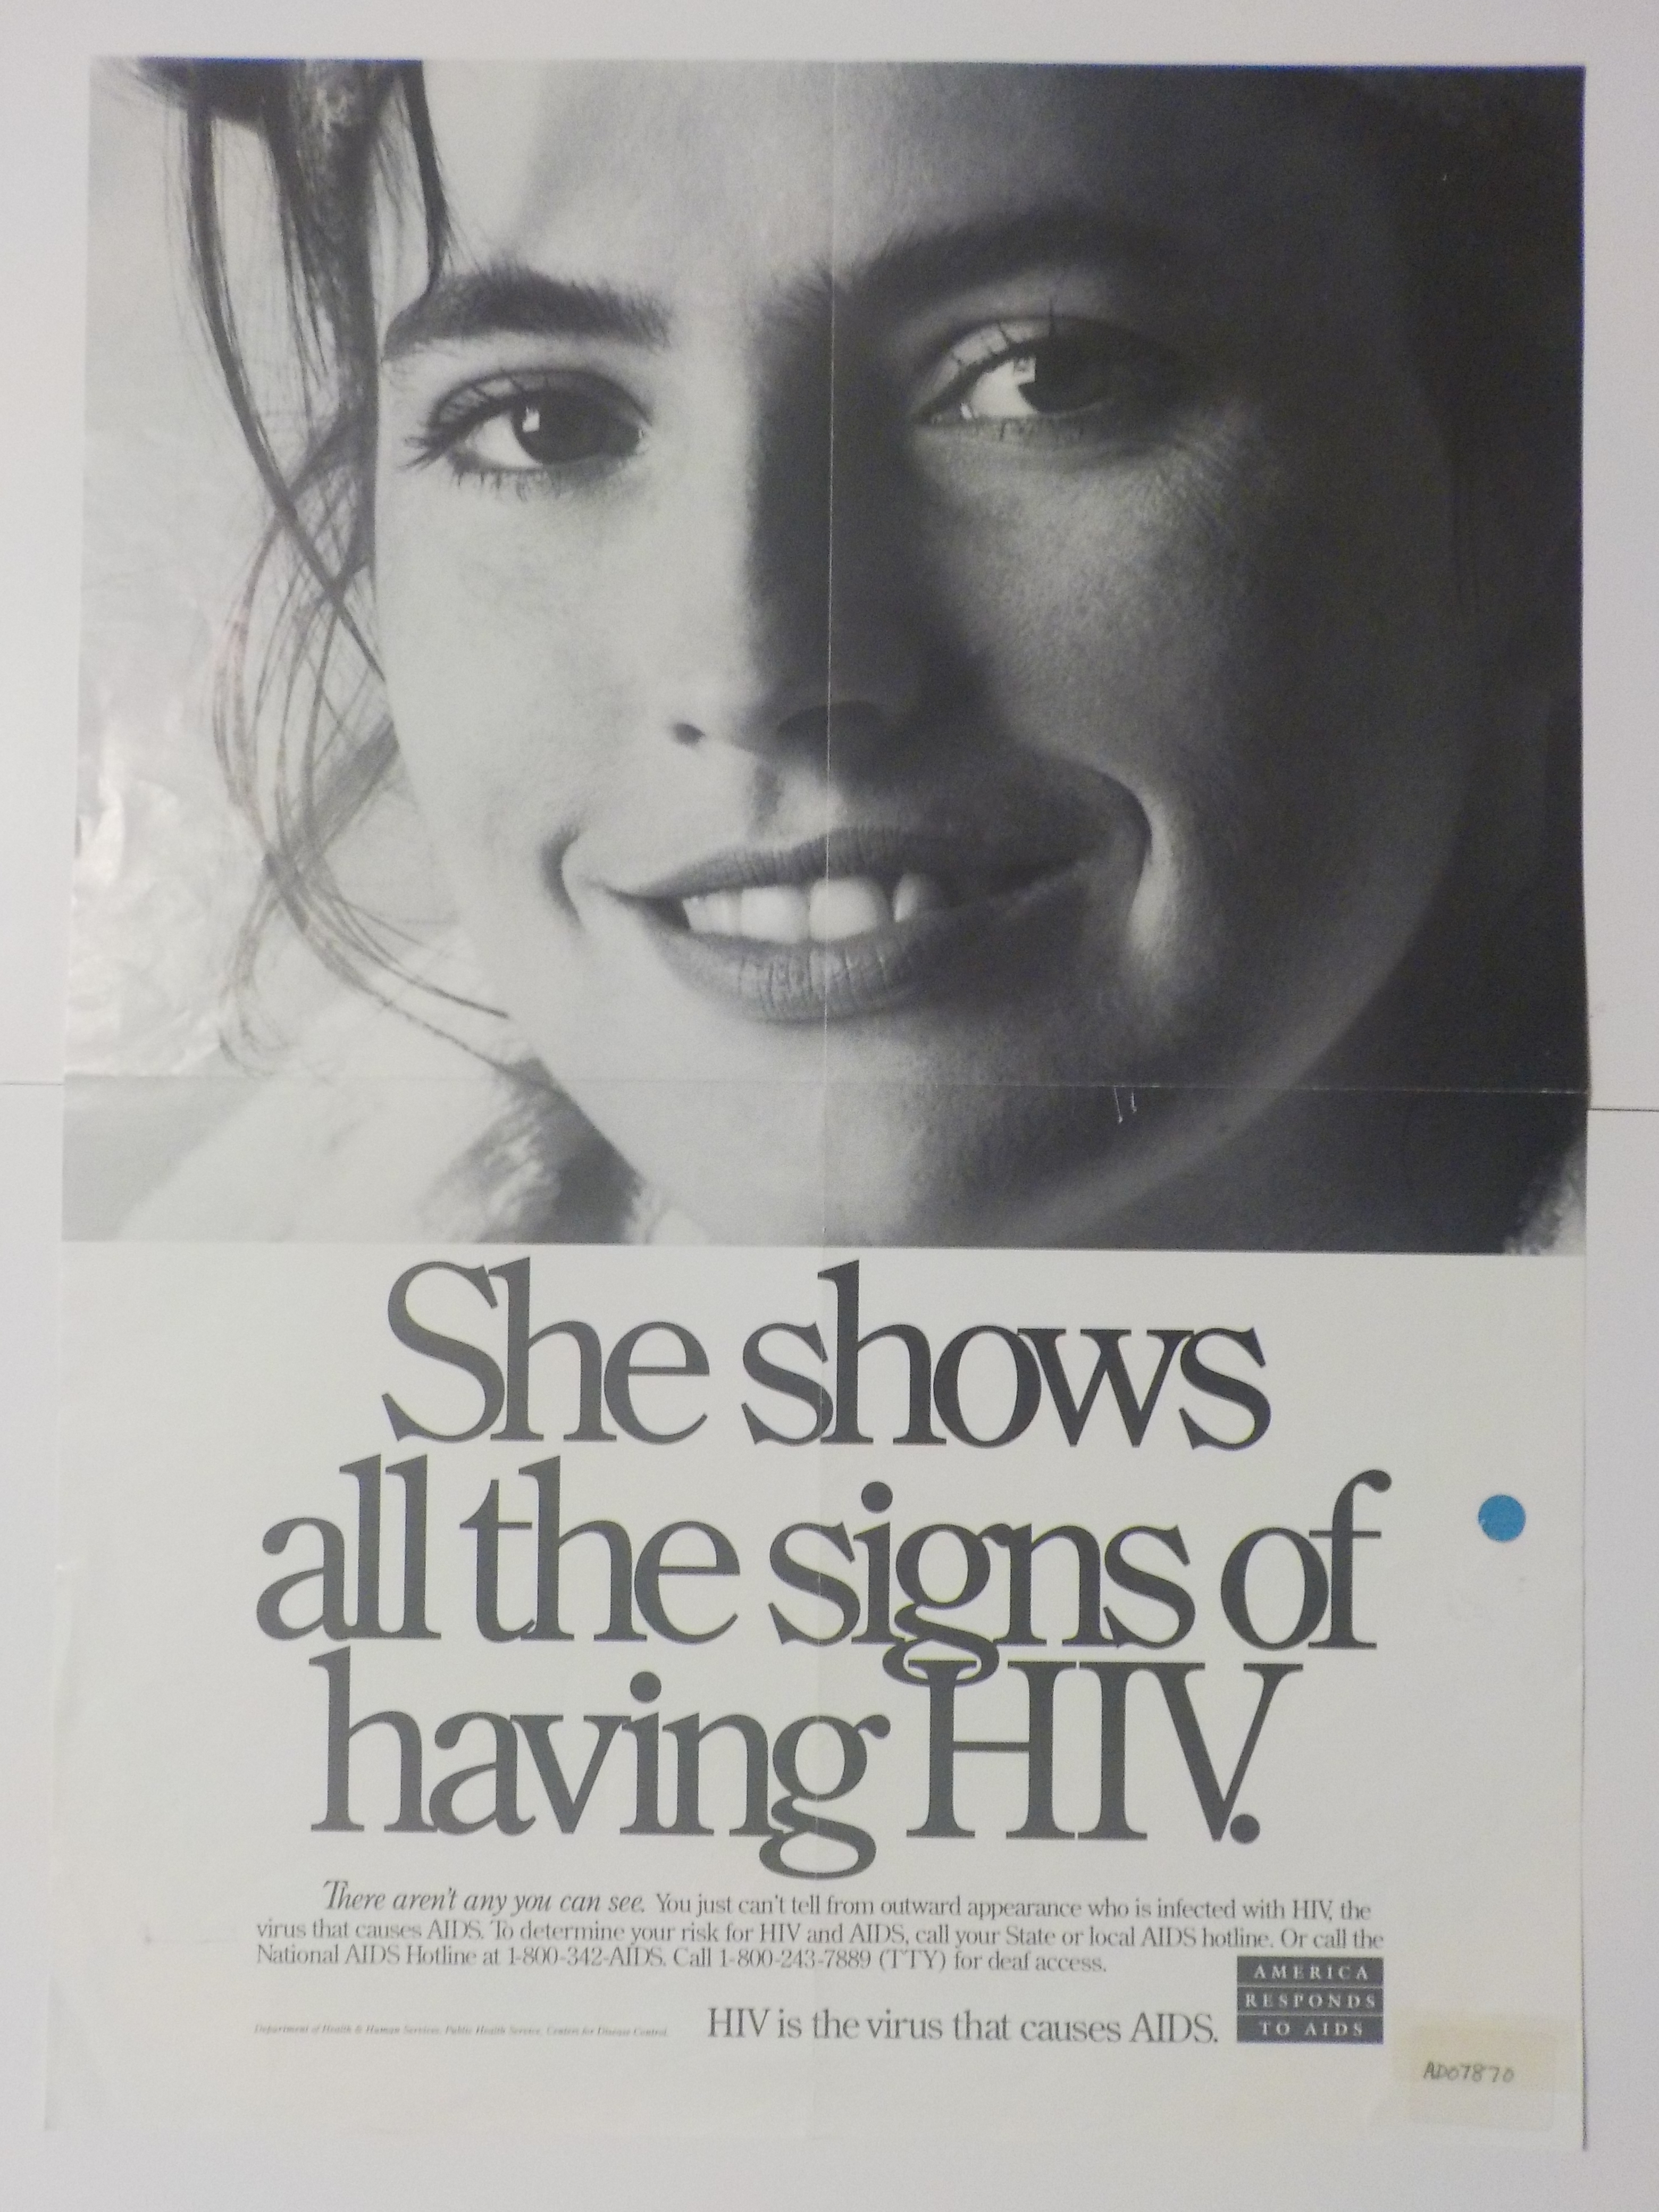 She shows all the signs of having HIV